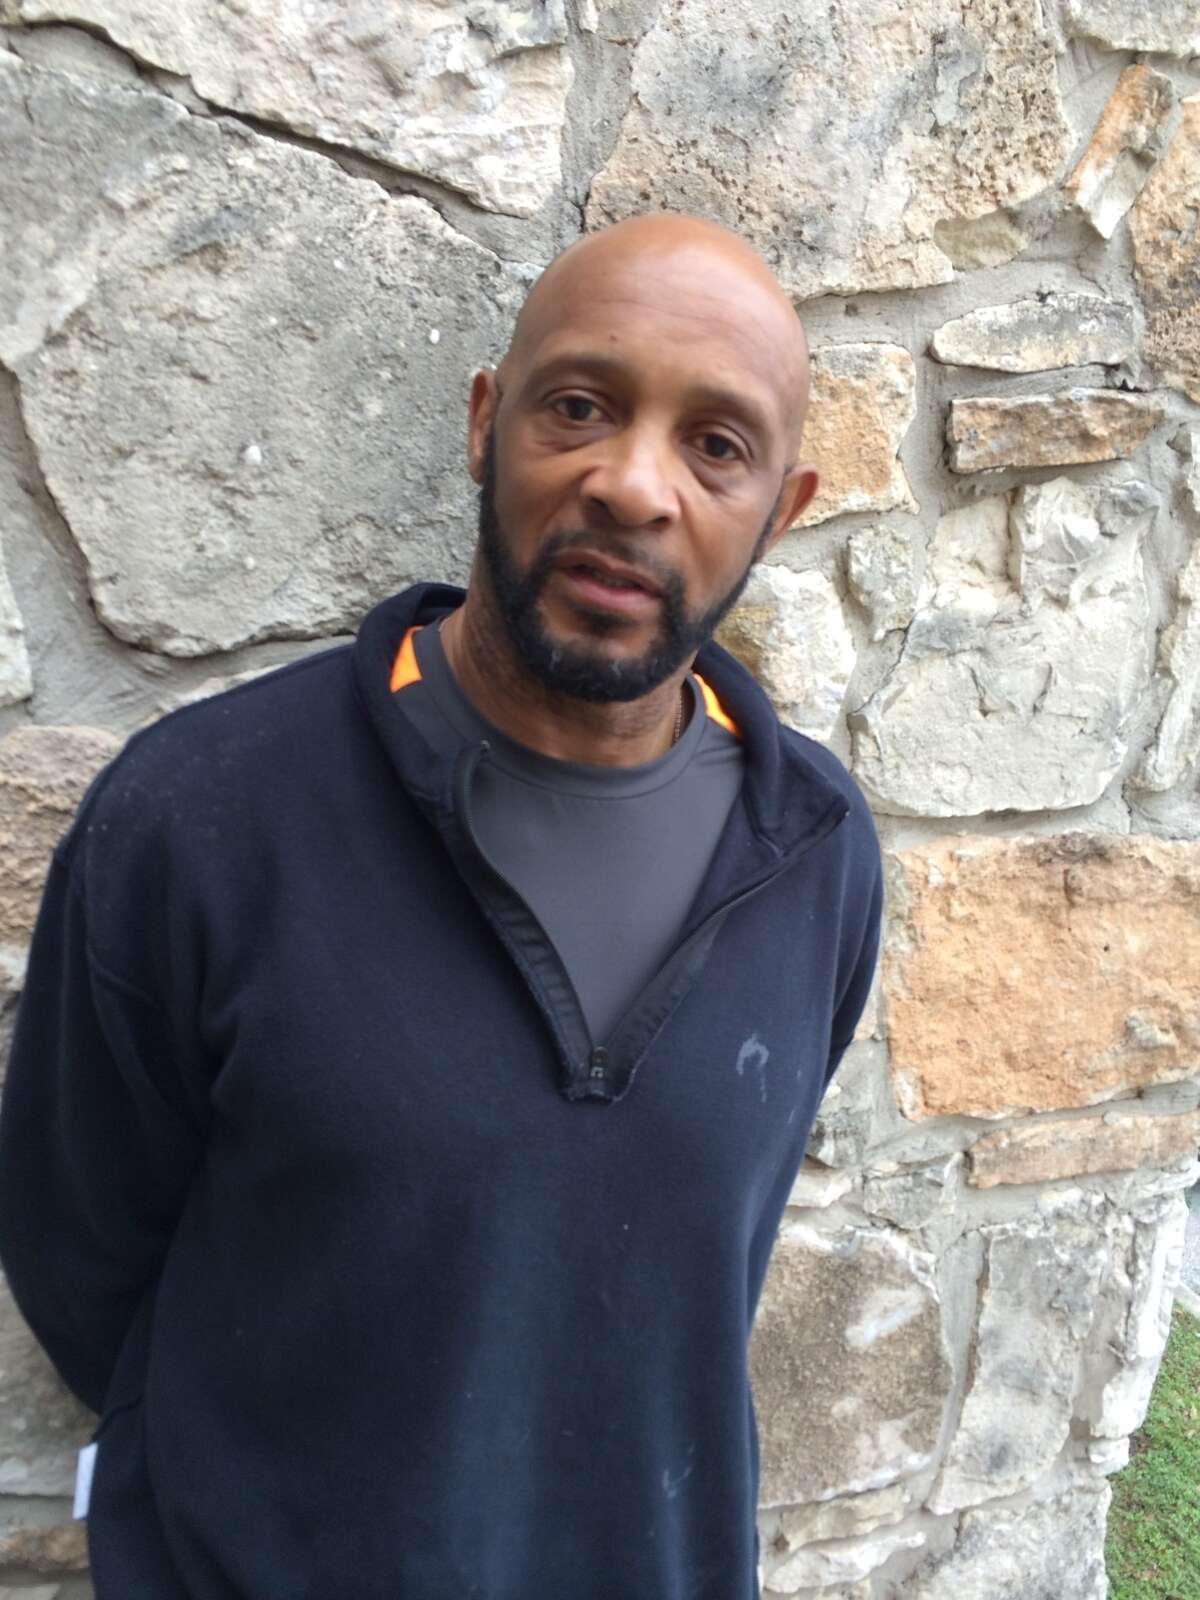 Former San Antonio Spurs guard Alvin Robertson after an arrest. Robertson then 52, reportedly cut off his GPS monitor that he was required to wear after being released from jail on his 2010 human trafficking charge.